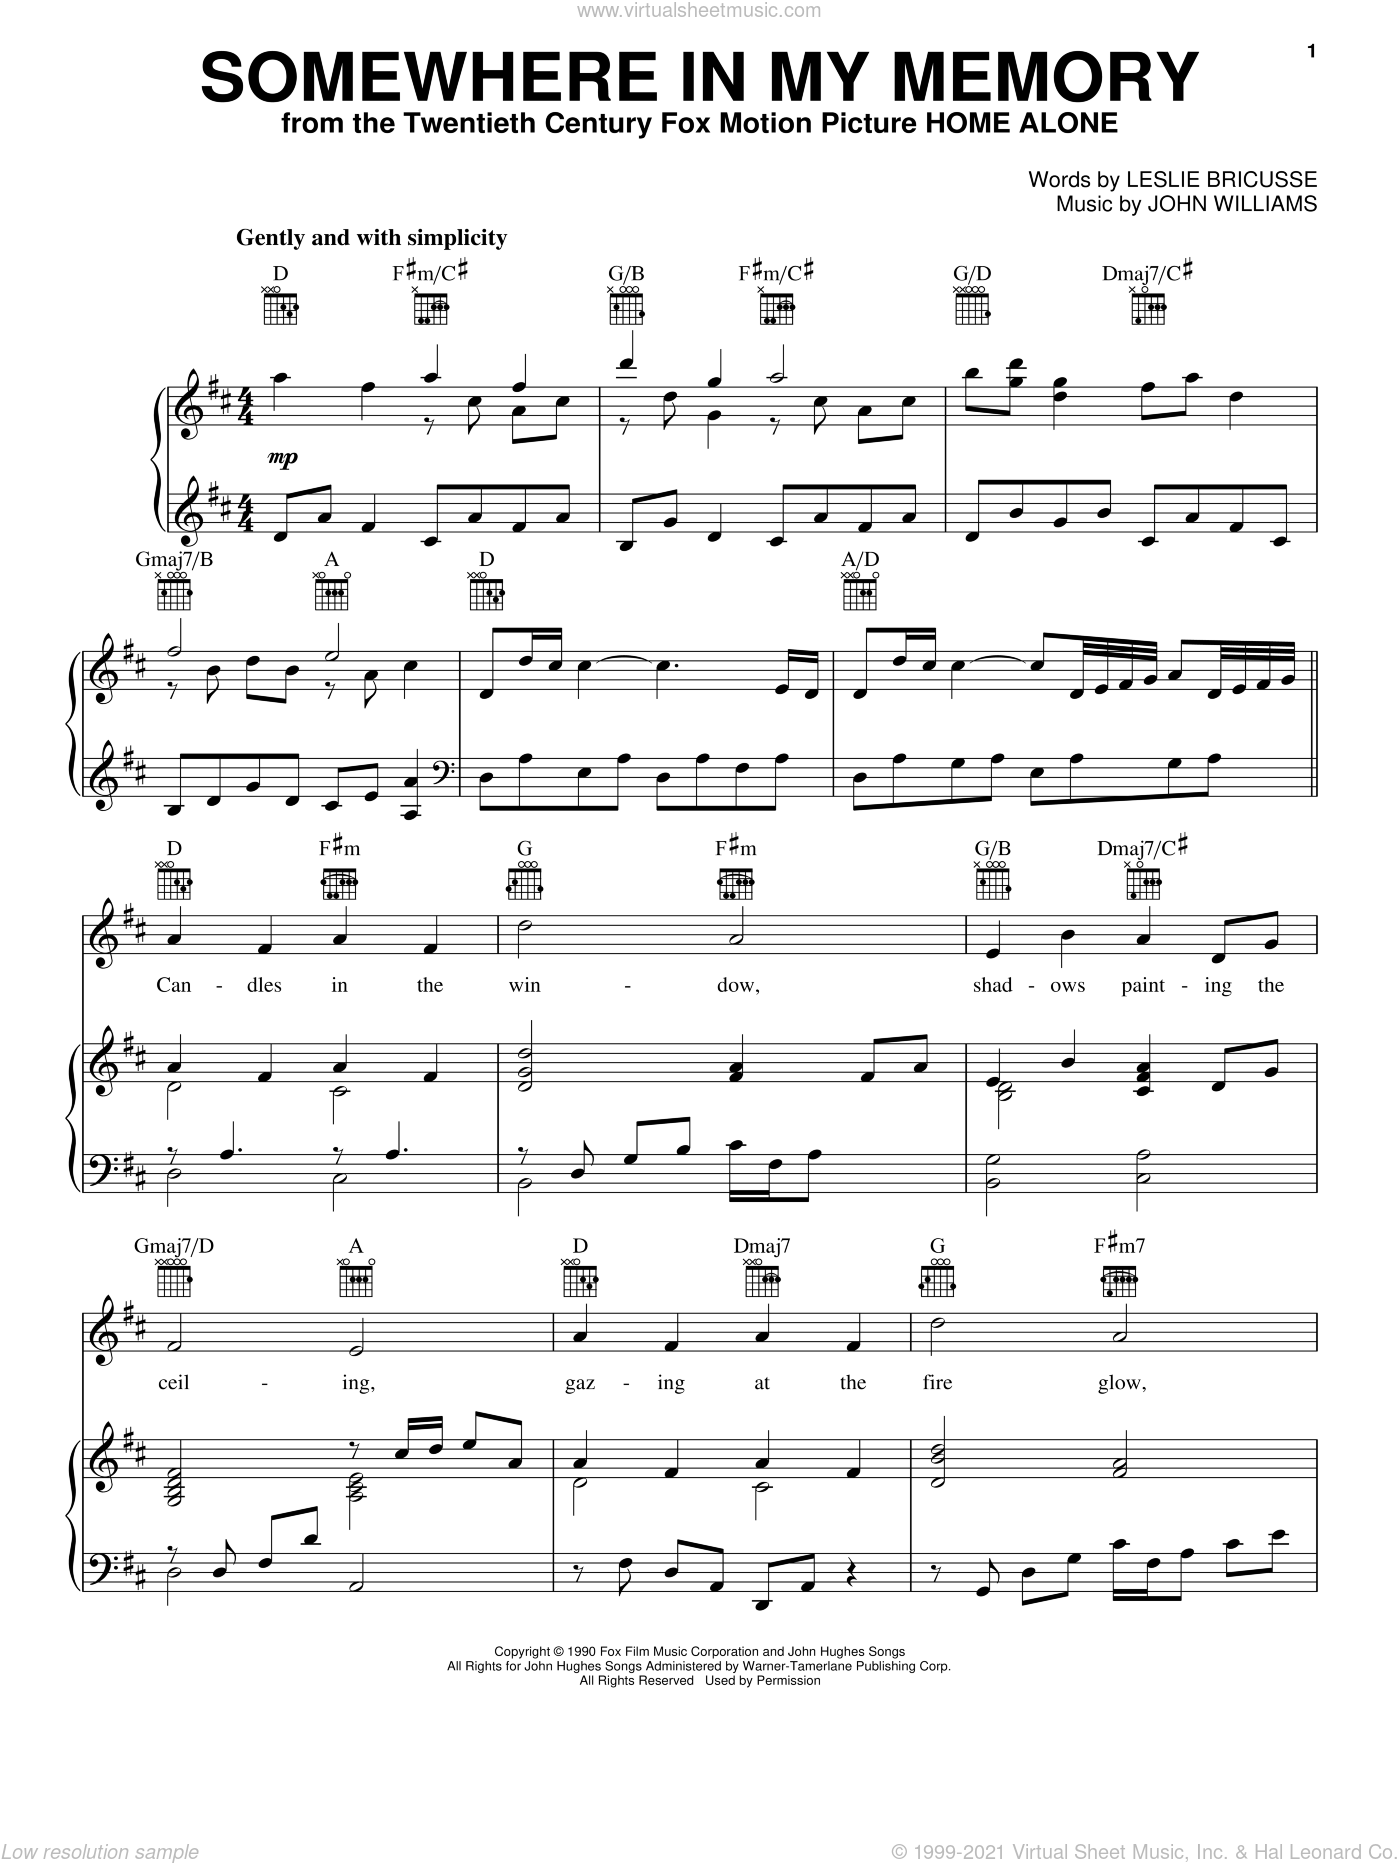 Somewhere In My Memory sheet music for voice, piano or guitar by Bette Midler, John Williams and Leslie Bricusse, intermediate skill level